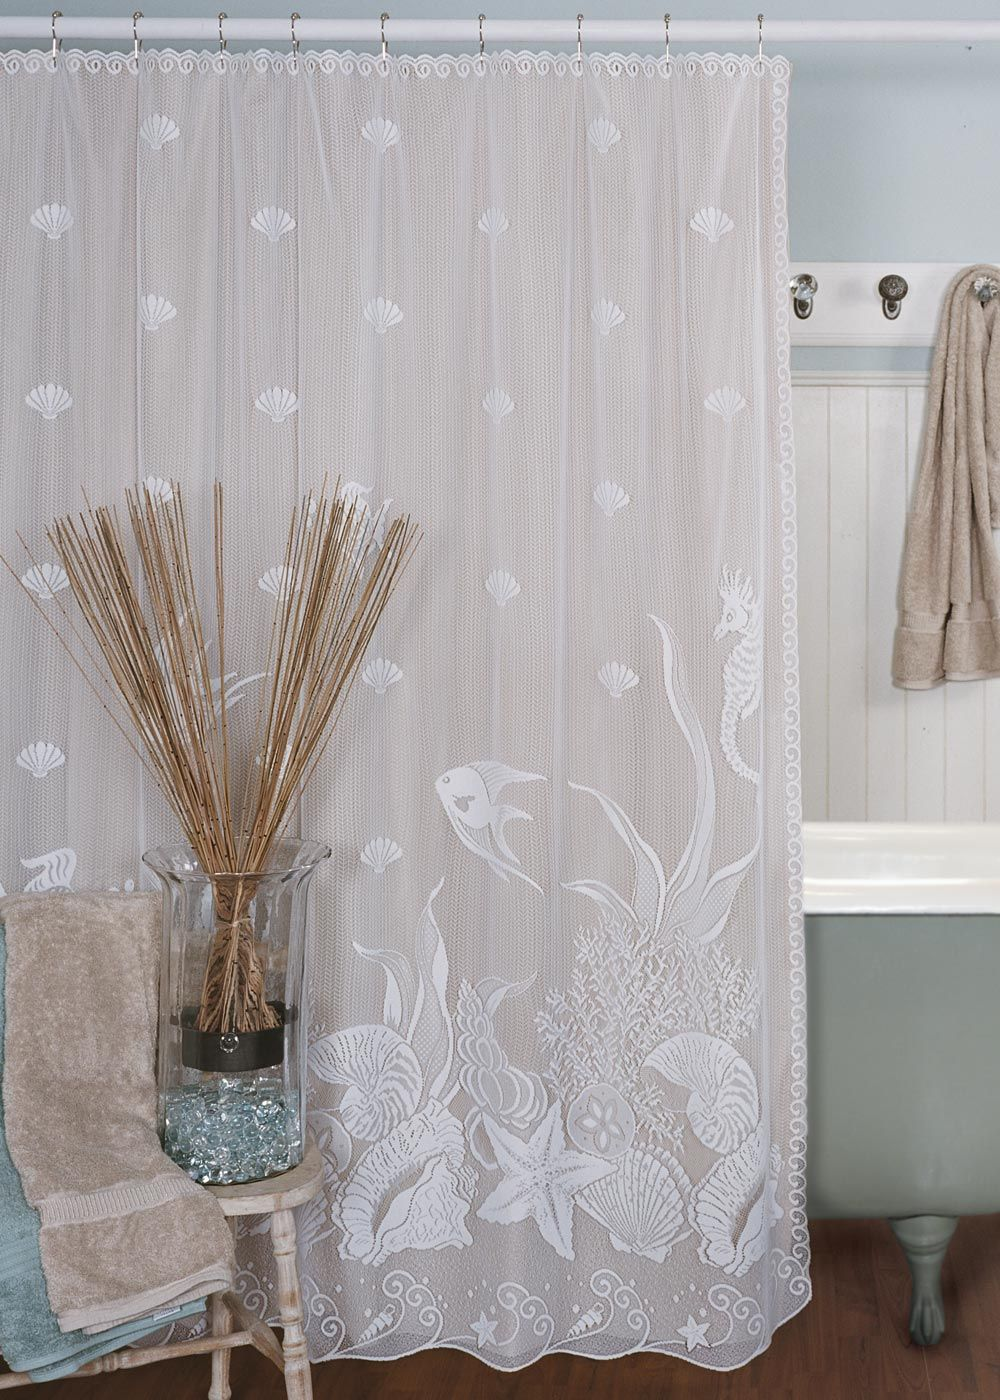 Search Bedbathhome Com Lace Shower Curtains Beach Shower